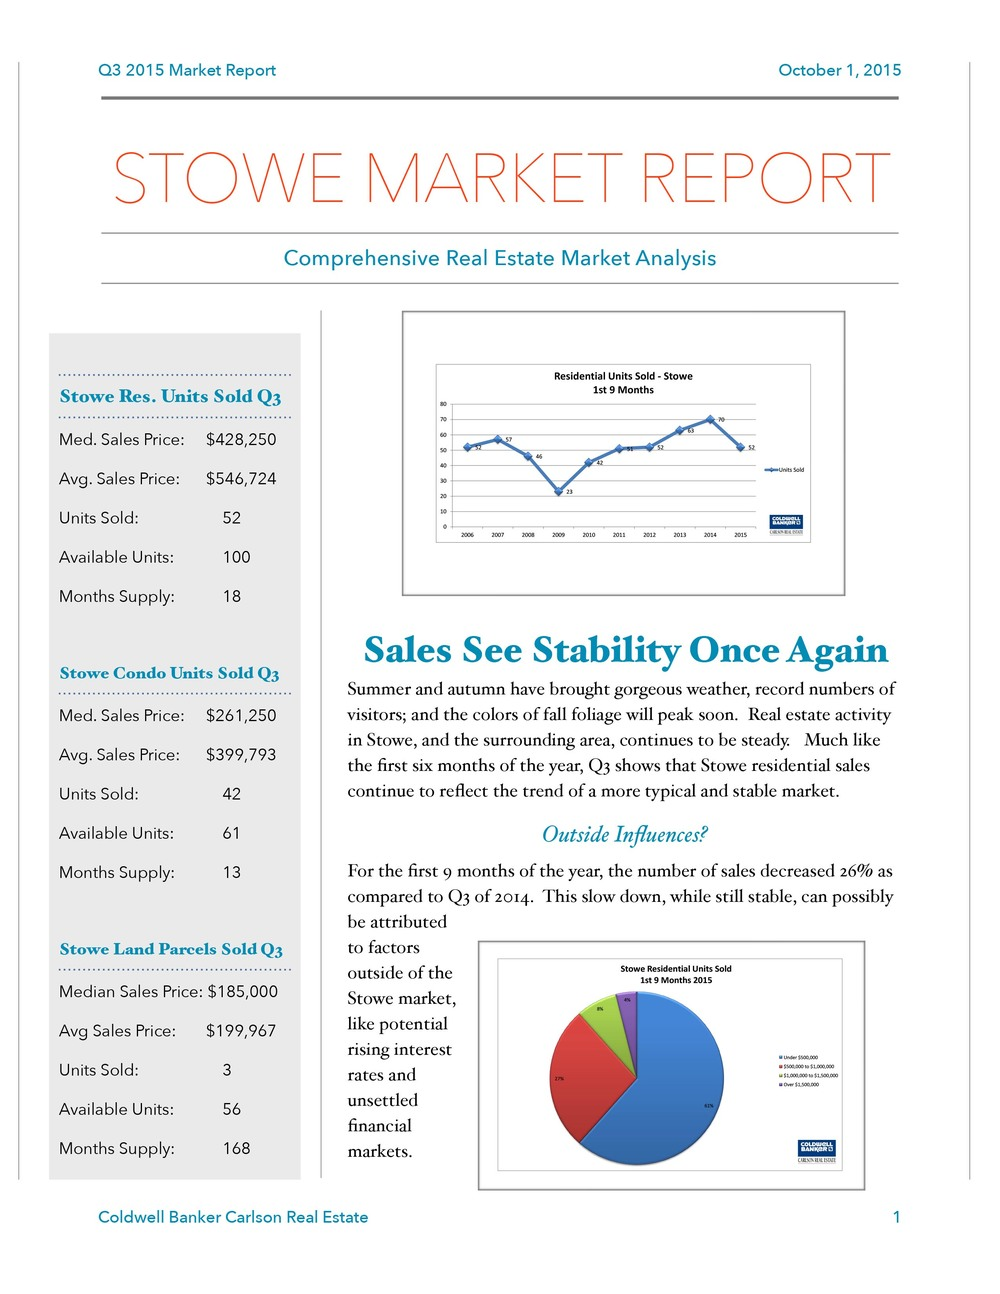 Q3 2015 Stowe Market Report Final